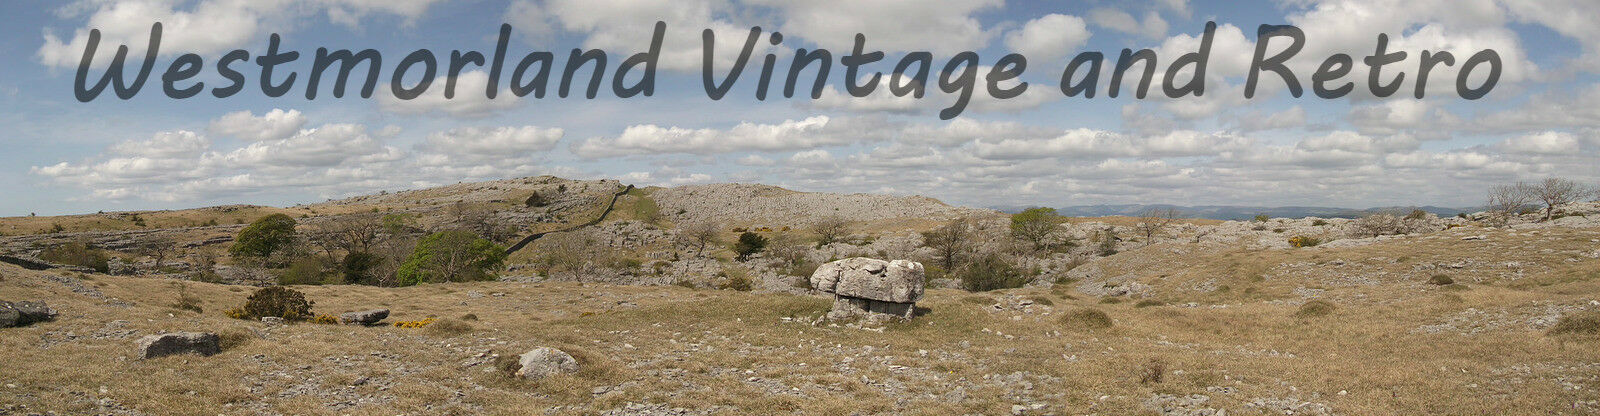 Westmorland Vintage and Retro